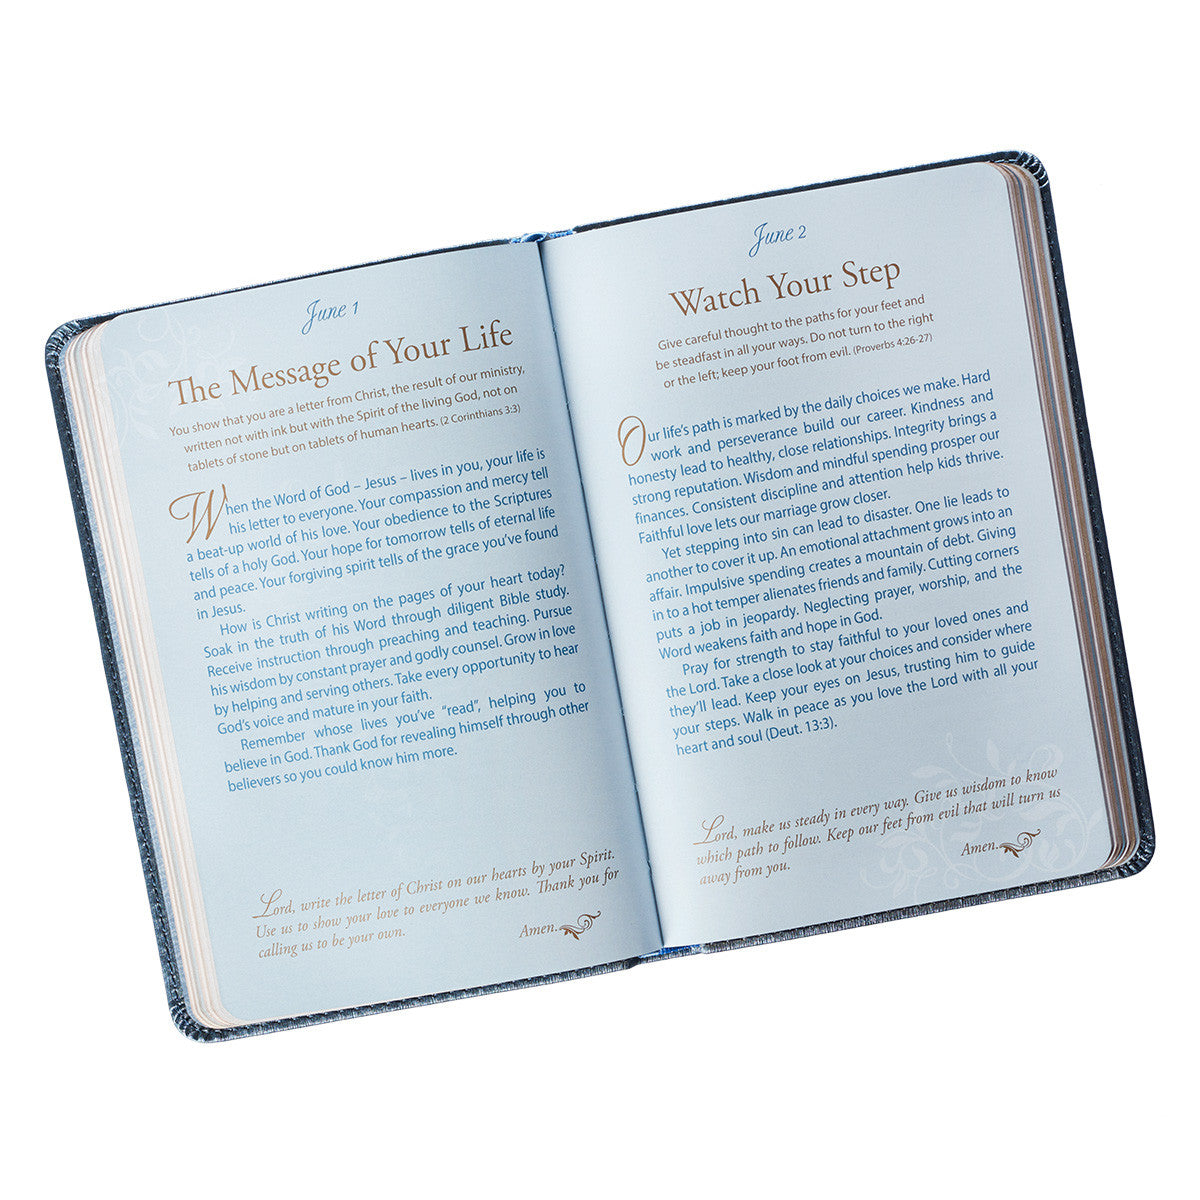 Mr & Mrs 366 Devotions for Couples in LuxLeather